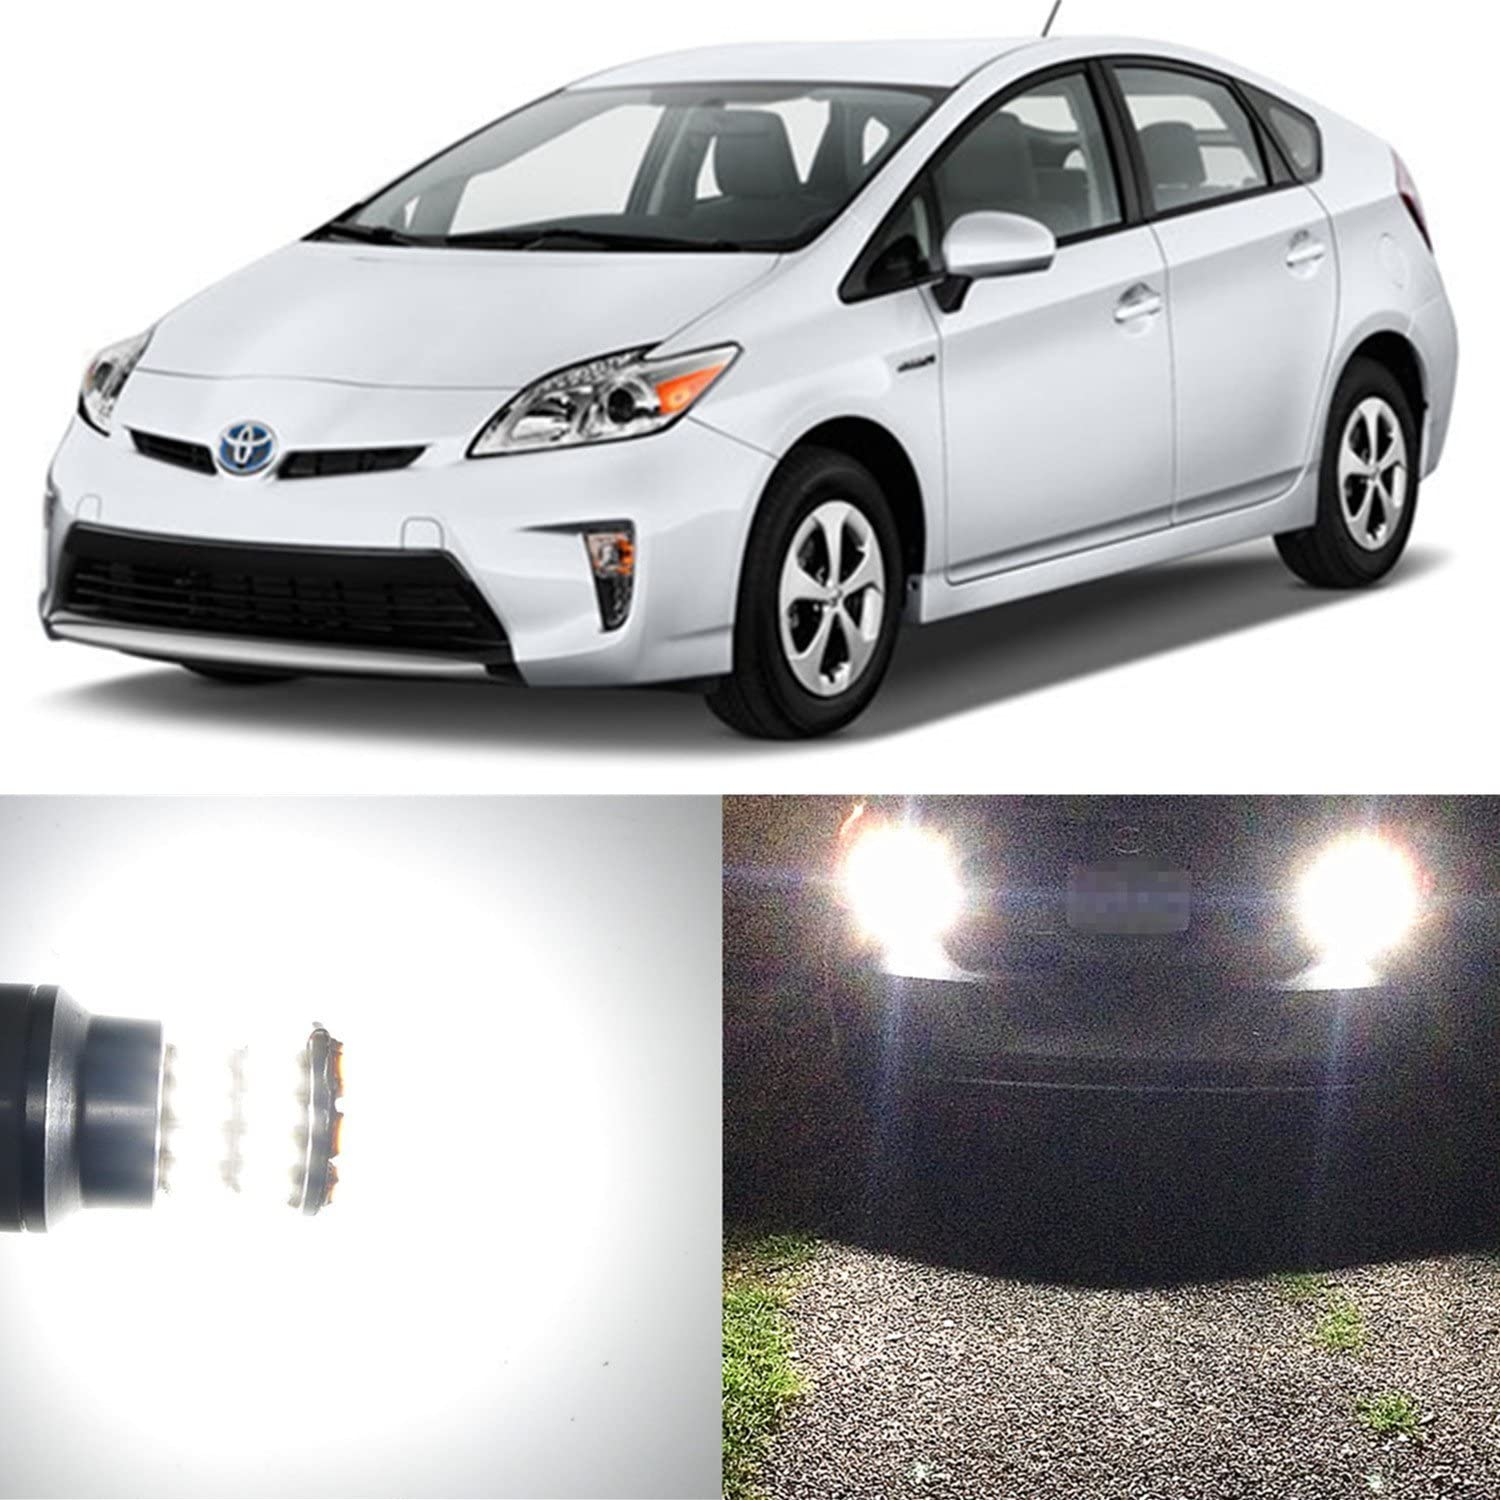 Alla Lighting 2pcs Super Bright 6000K White 921 LED Bulbs for Back-Up Reverse Light Lamps Replacement for 2003 2003 2016 2017 Toyota Prius / 2012 2013 2014 2015 2016 2017 Prius C/Prius Prime